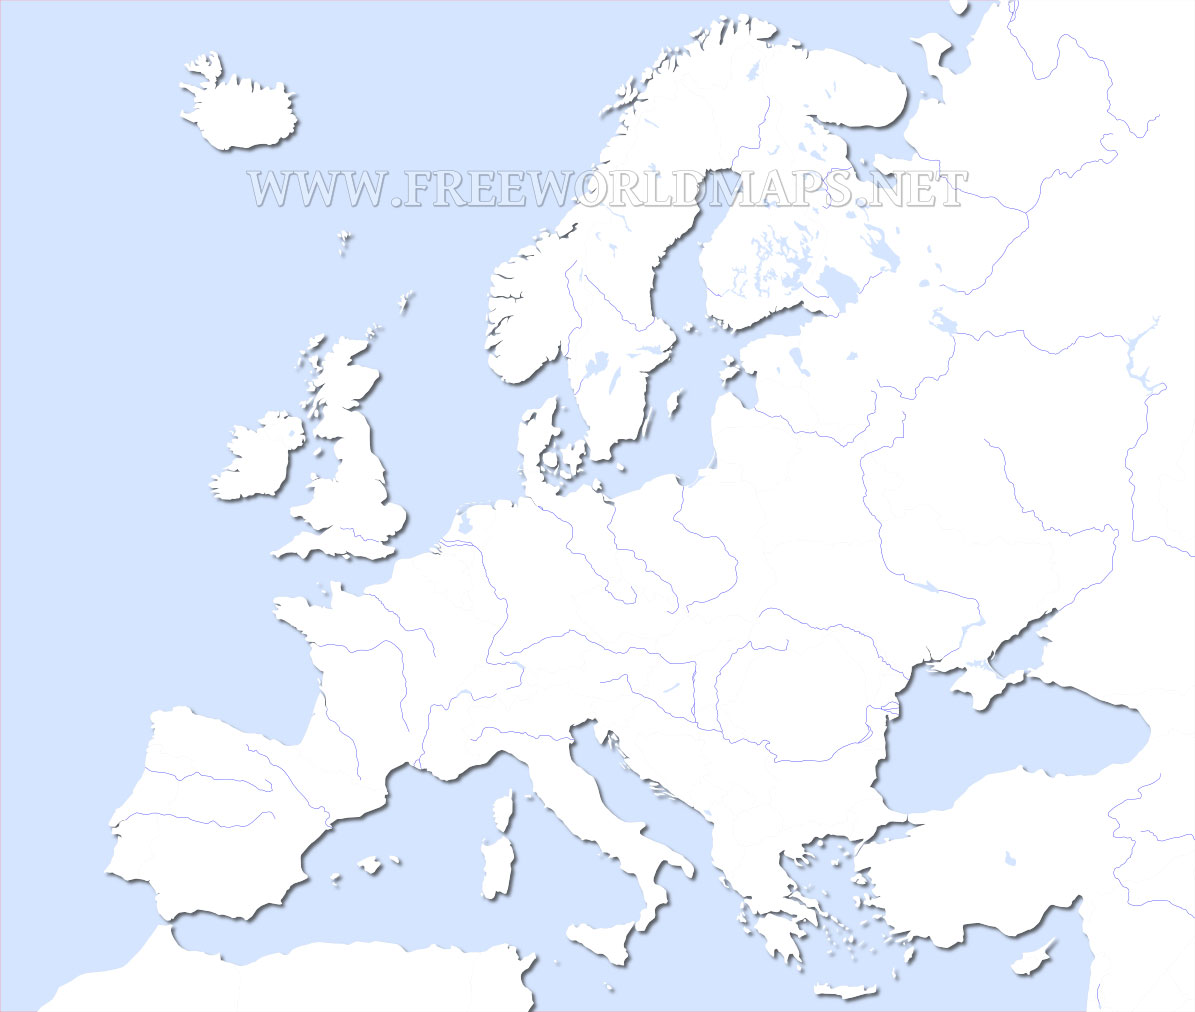 Europe Physical Map – Freeworldmaps.net